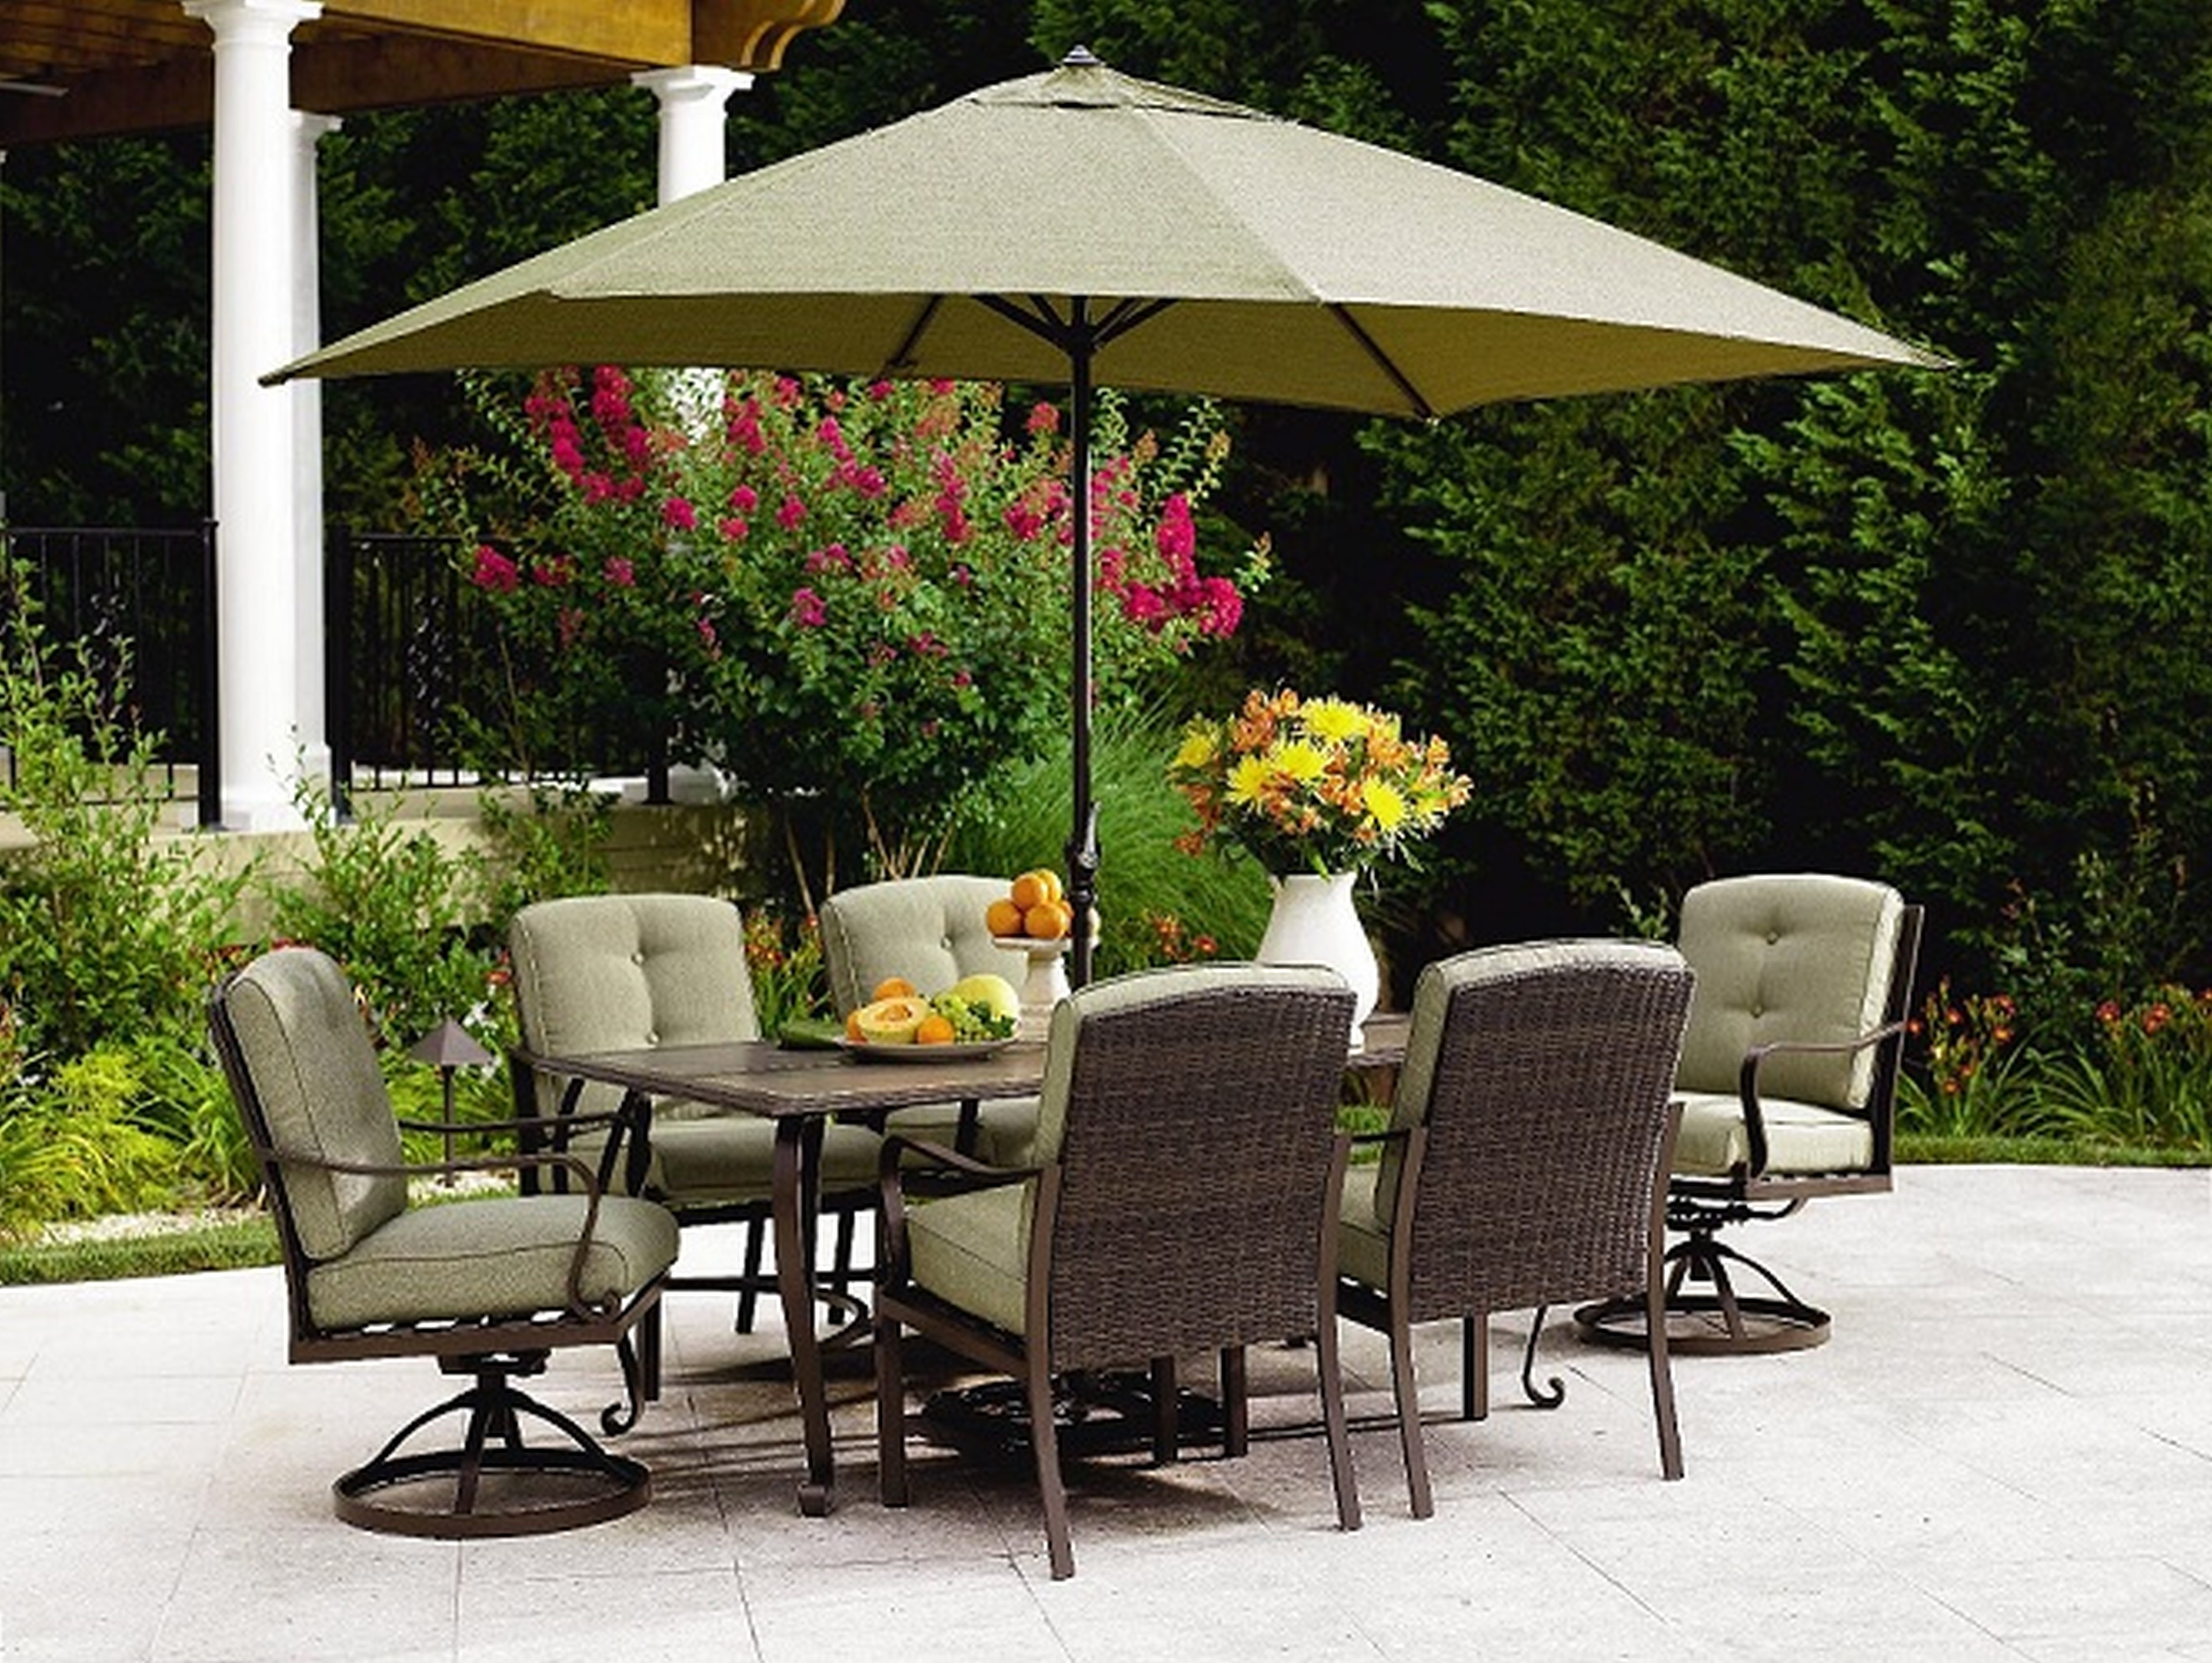 Preferred Patio Furniture With Umbrellas Intended For 38 Small Patio Table With Umbrella, Furniture: Patio Chairs That (Gallery 18 of 20)